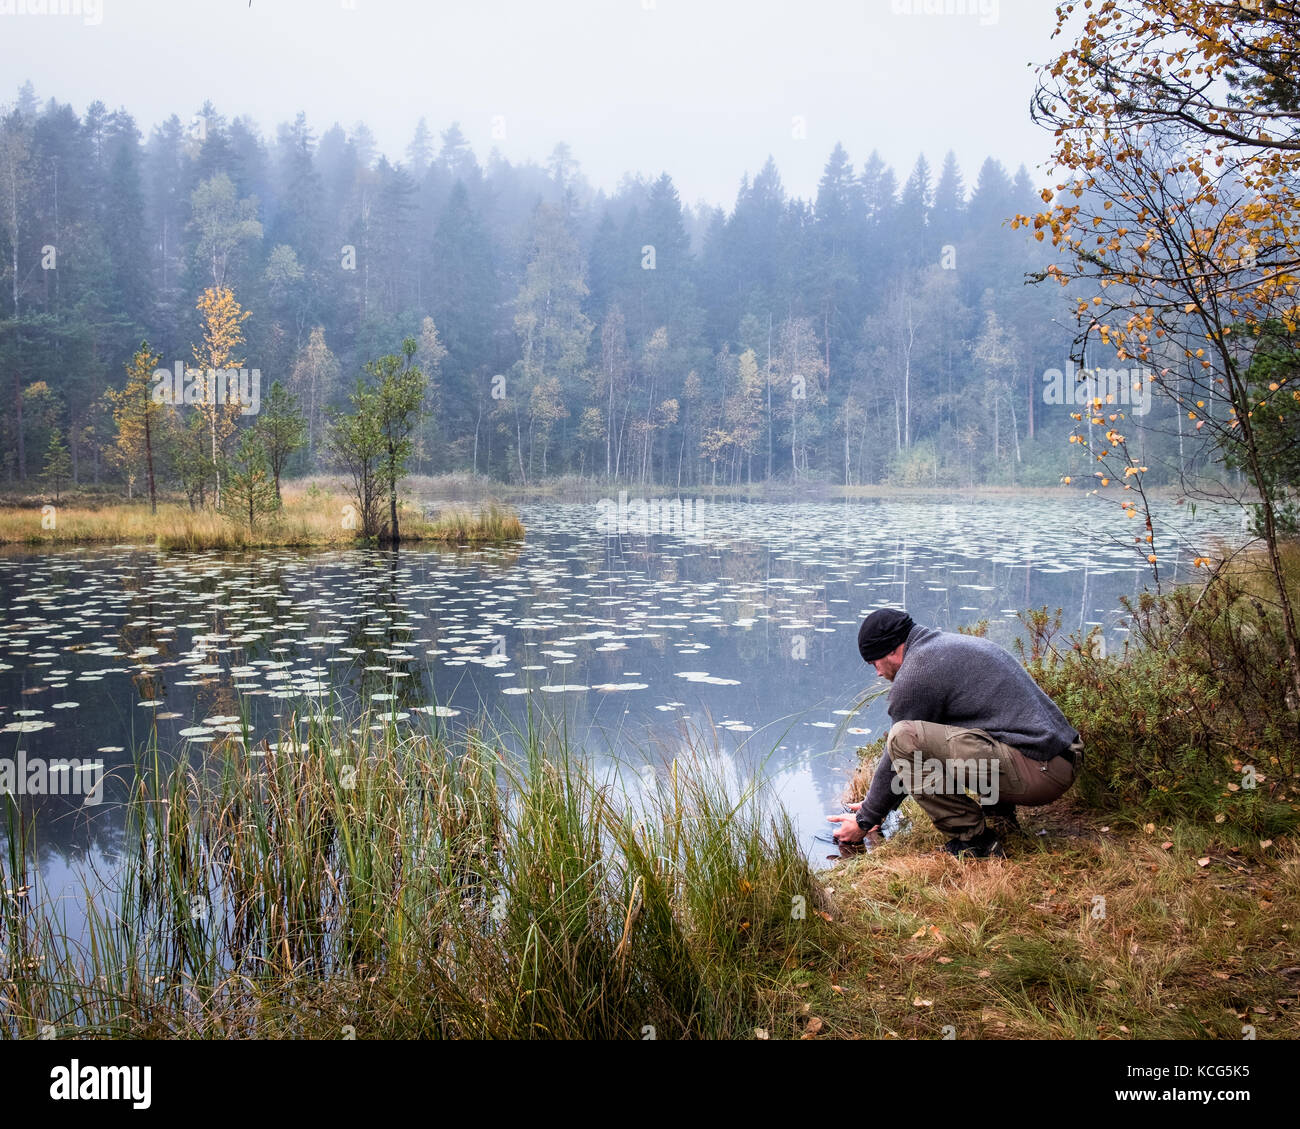 Hiker washing his face at autumn morning in the National Park, Finland - Stock Image